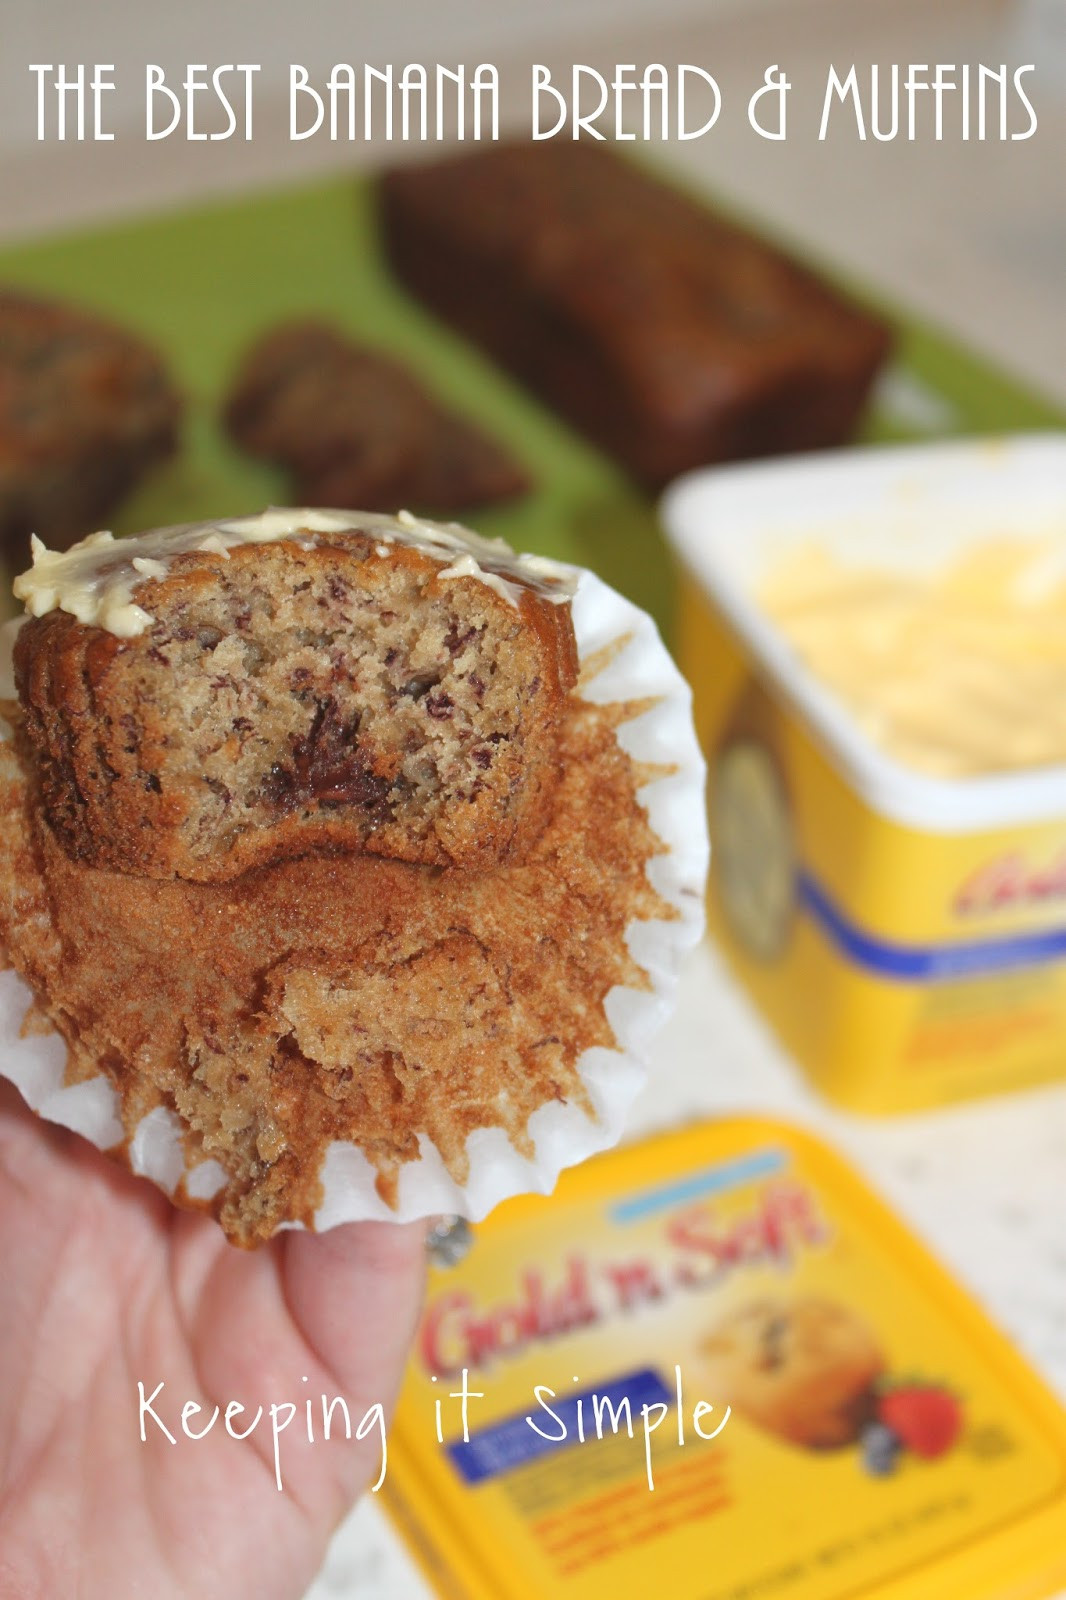 Best Banana Bread Muffins  The Best Banana Bread and Muffins Recipe • Keeping it Simple